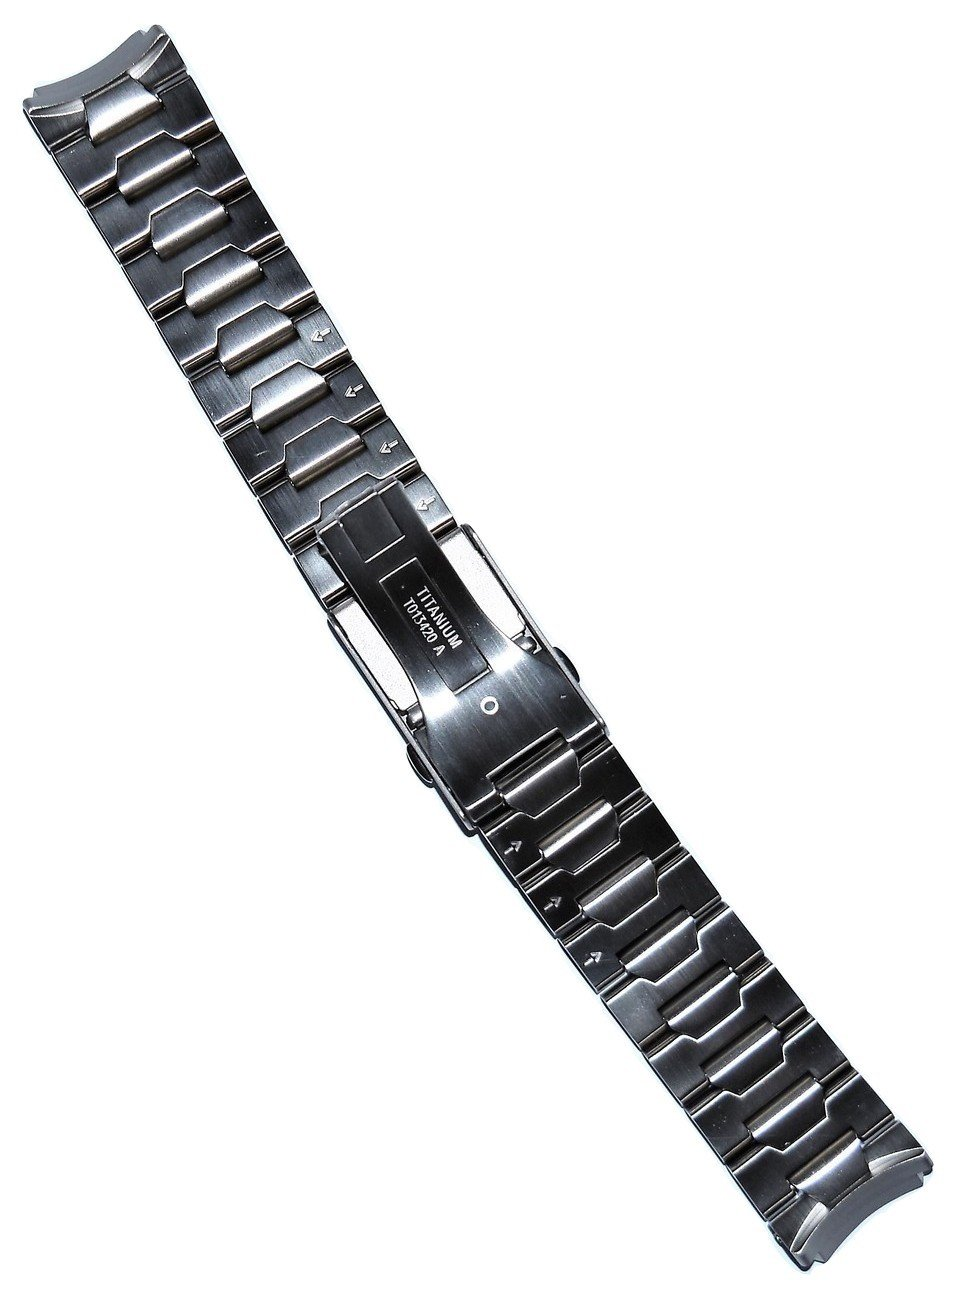 Tissot T-Touch II & Expert Titanium Watch Bracelet Band [CHECK FOR T013420A or T047420A ON THE BACK OF WATCH] by Tissot (Image #2)